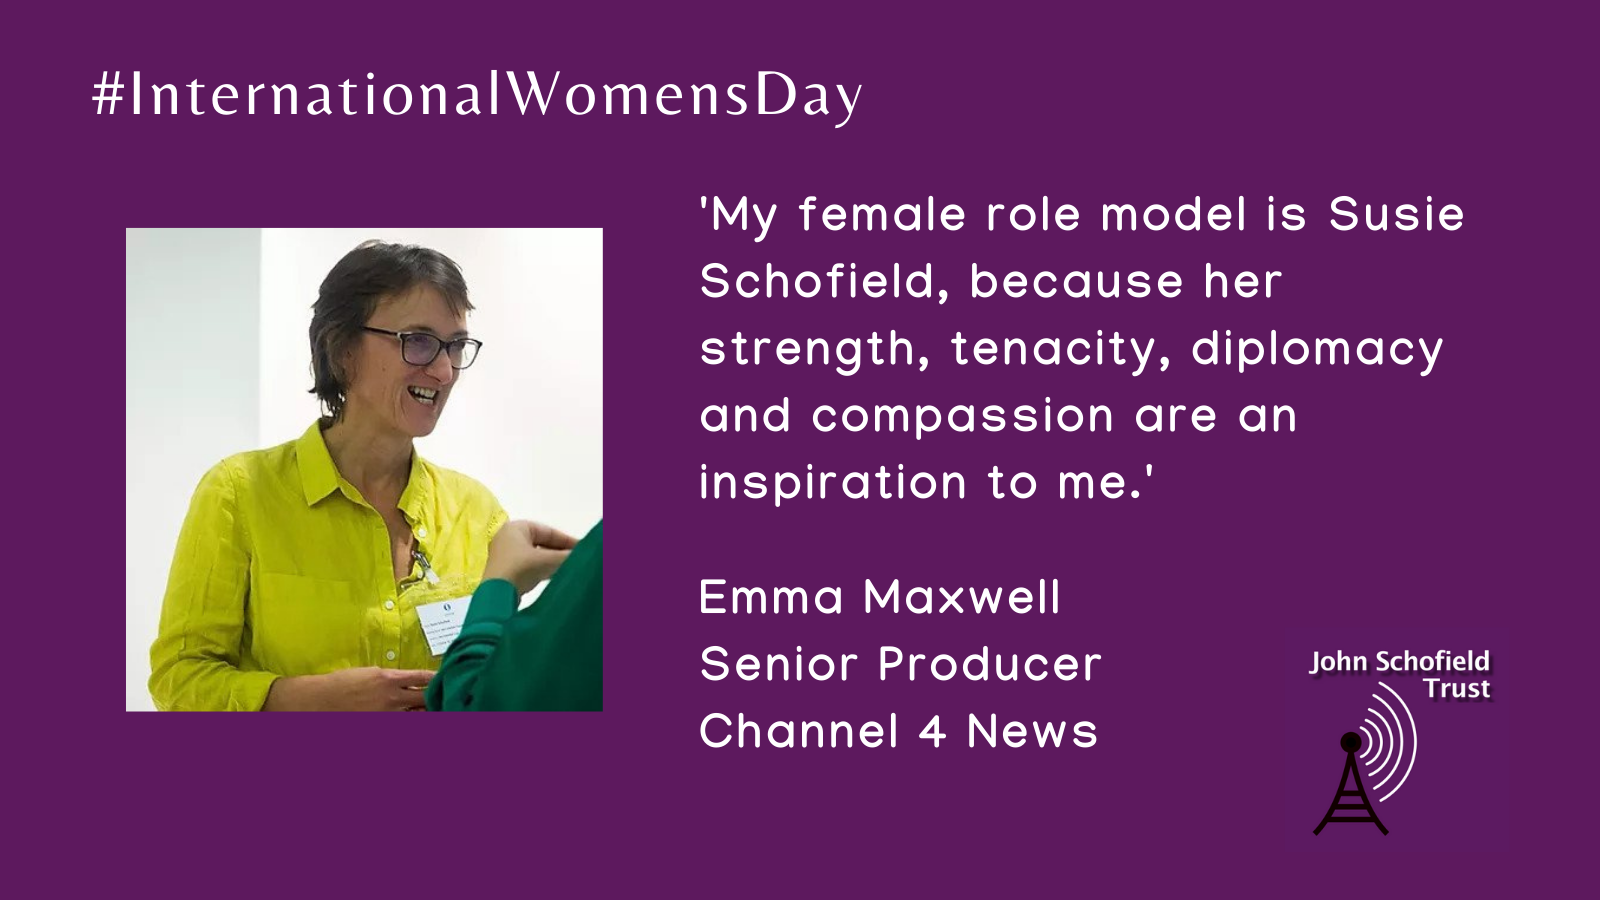 Emma Maxwell's inspirational woman for #IWD